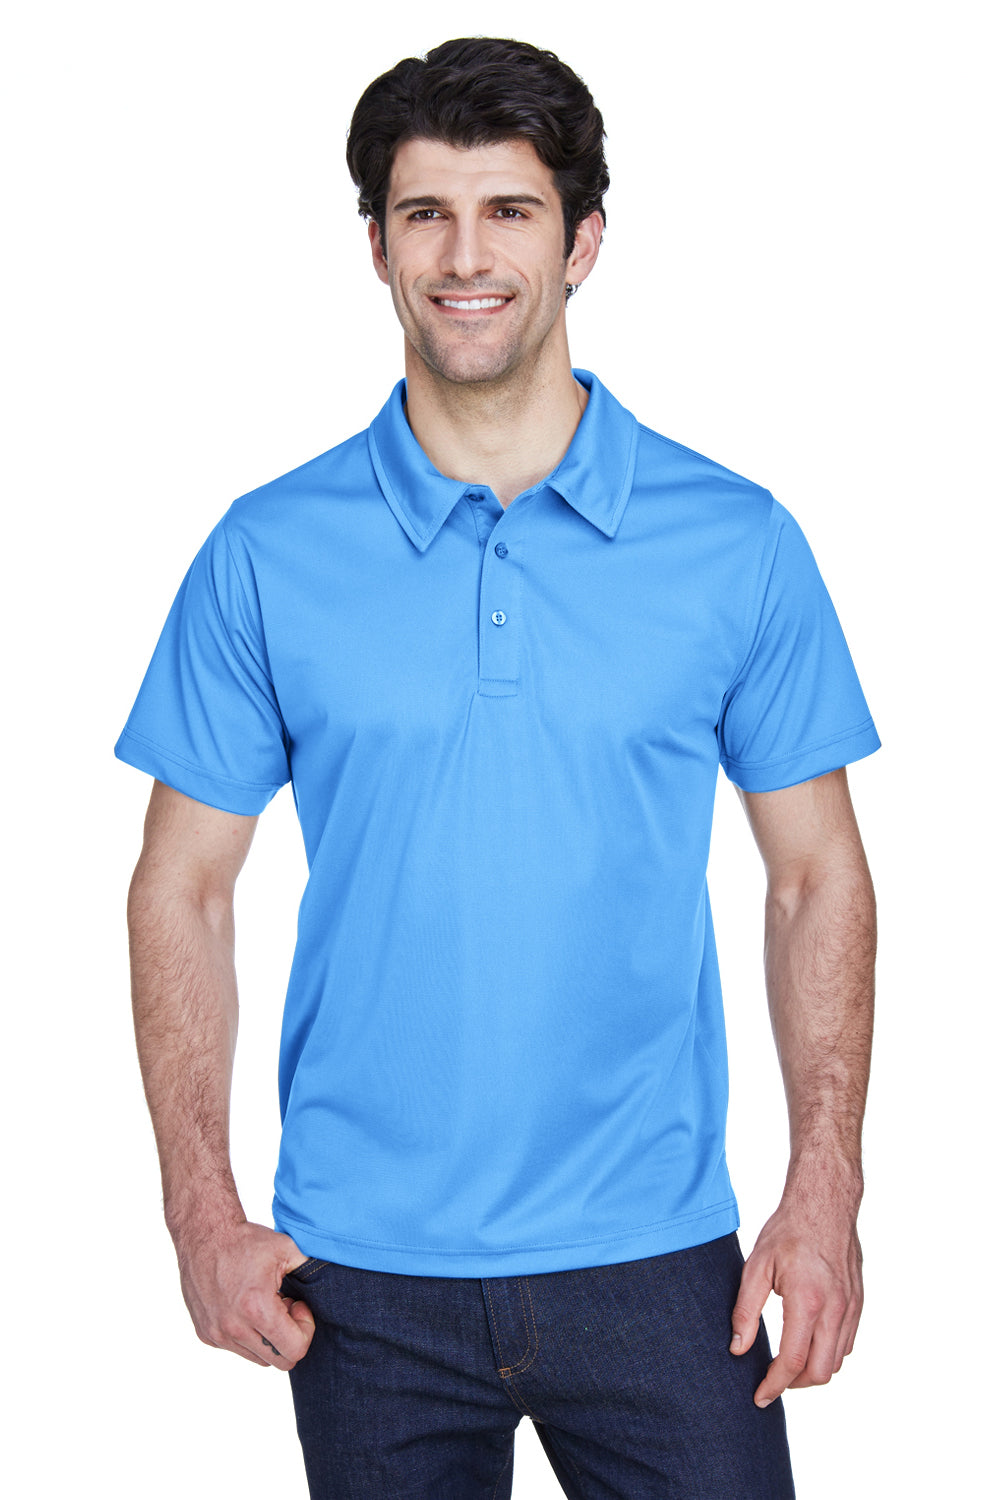 Team 365 TT21 Mens Command Performance Moisture Wicking Short Sleeve Polo Shirt Light Blue Front